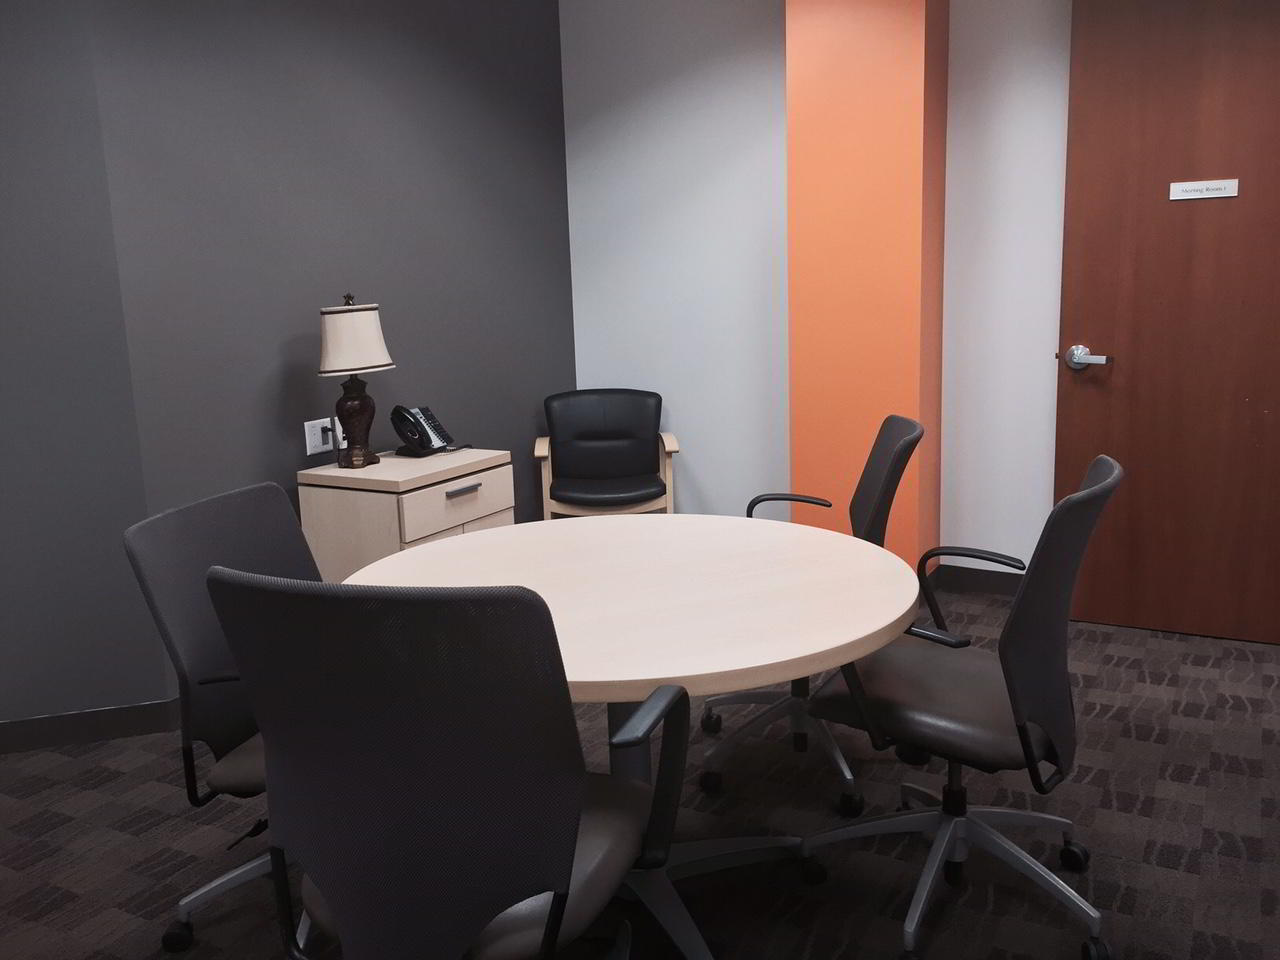 Turnkey Colorado Springs Conference Room